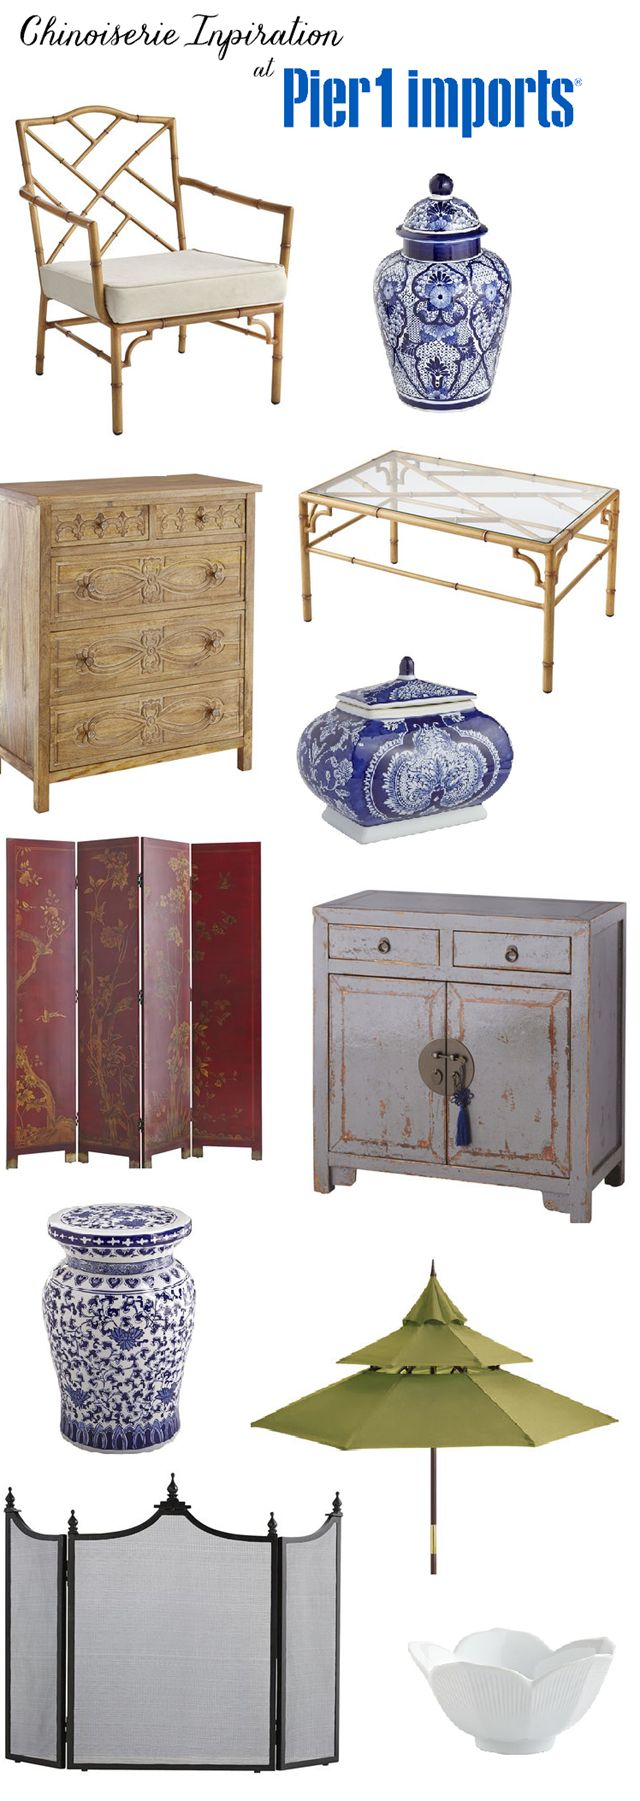 """When did @pier1imports become so """"chinoiserie chic""""? (Blue and white ginger jars, faux bamboo chair, coffee table, carved chest, Asian screen, red screen room divider, pagoda patio umbrella, etc.)"""